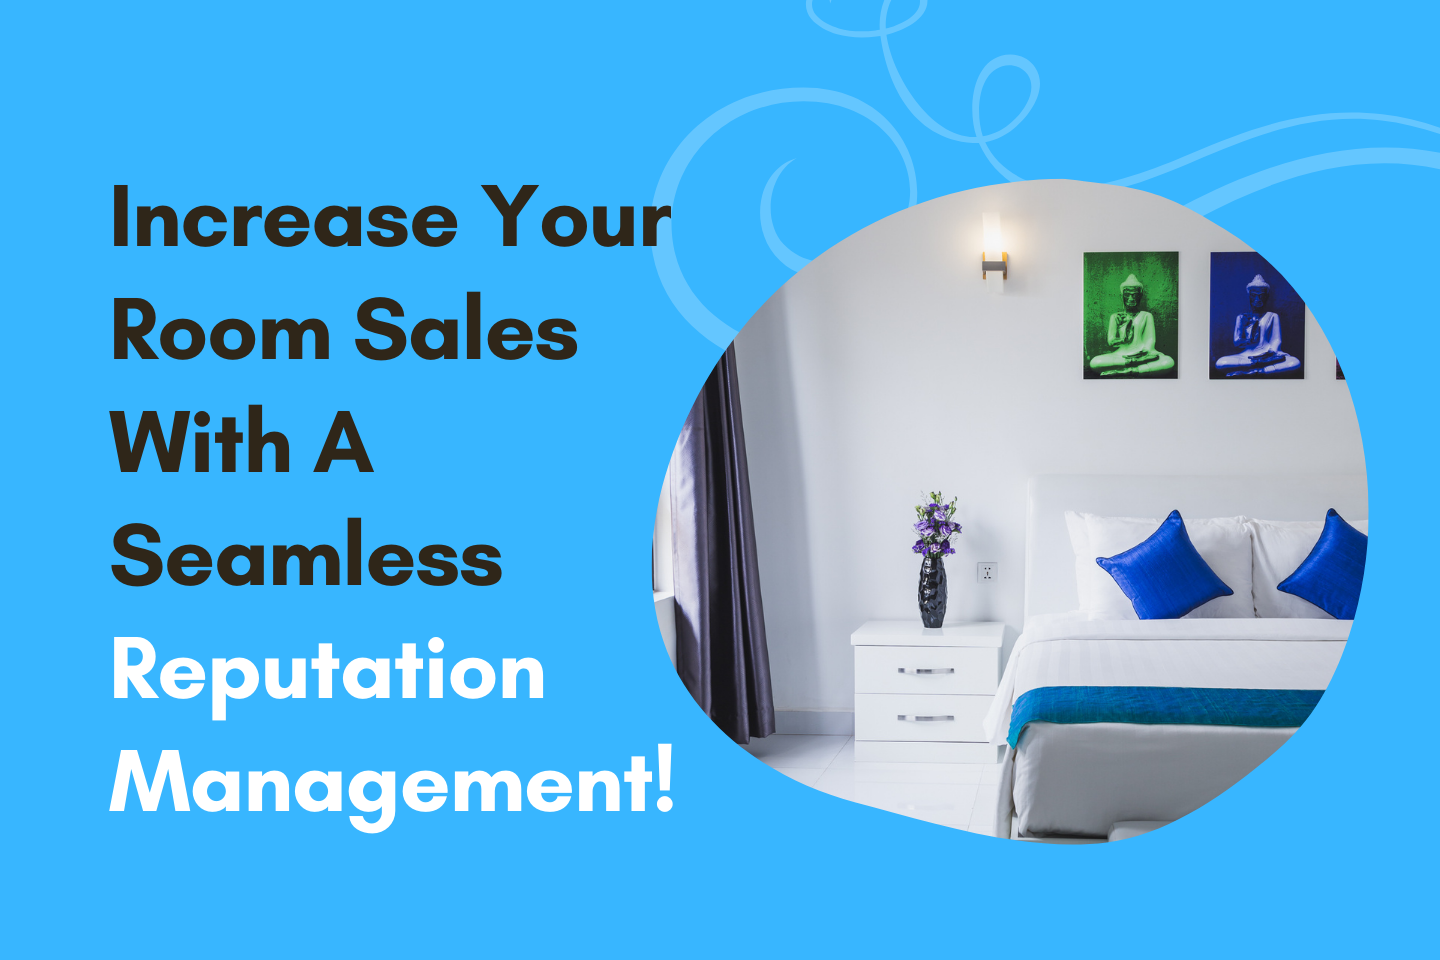 reputation management is essential for hotels